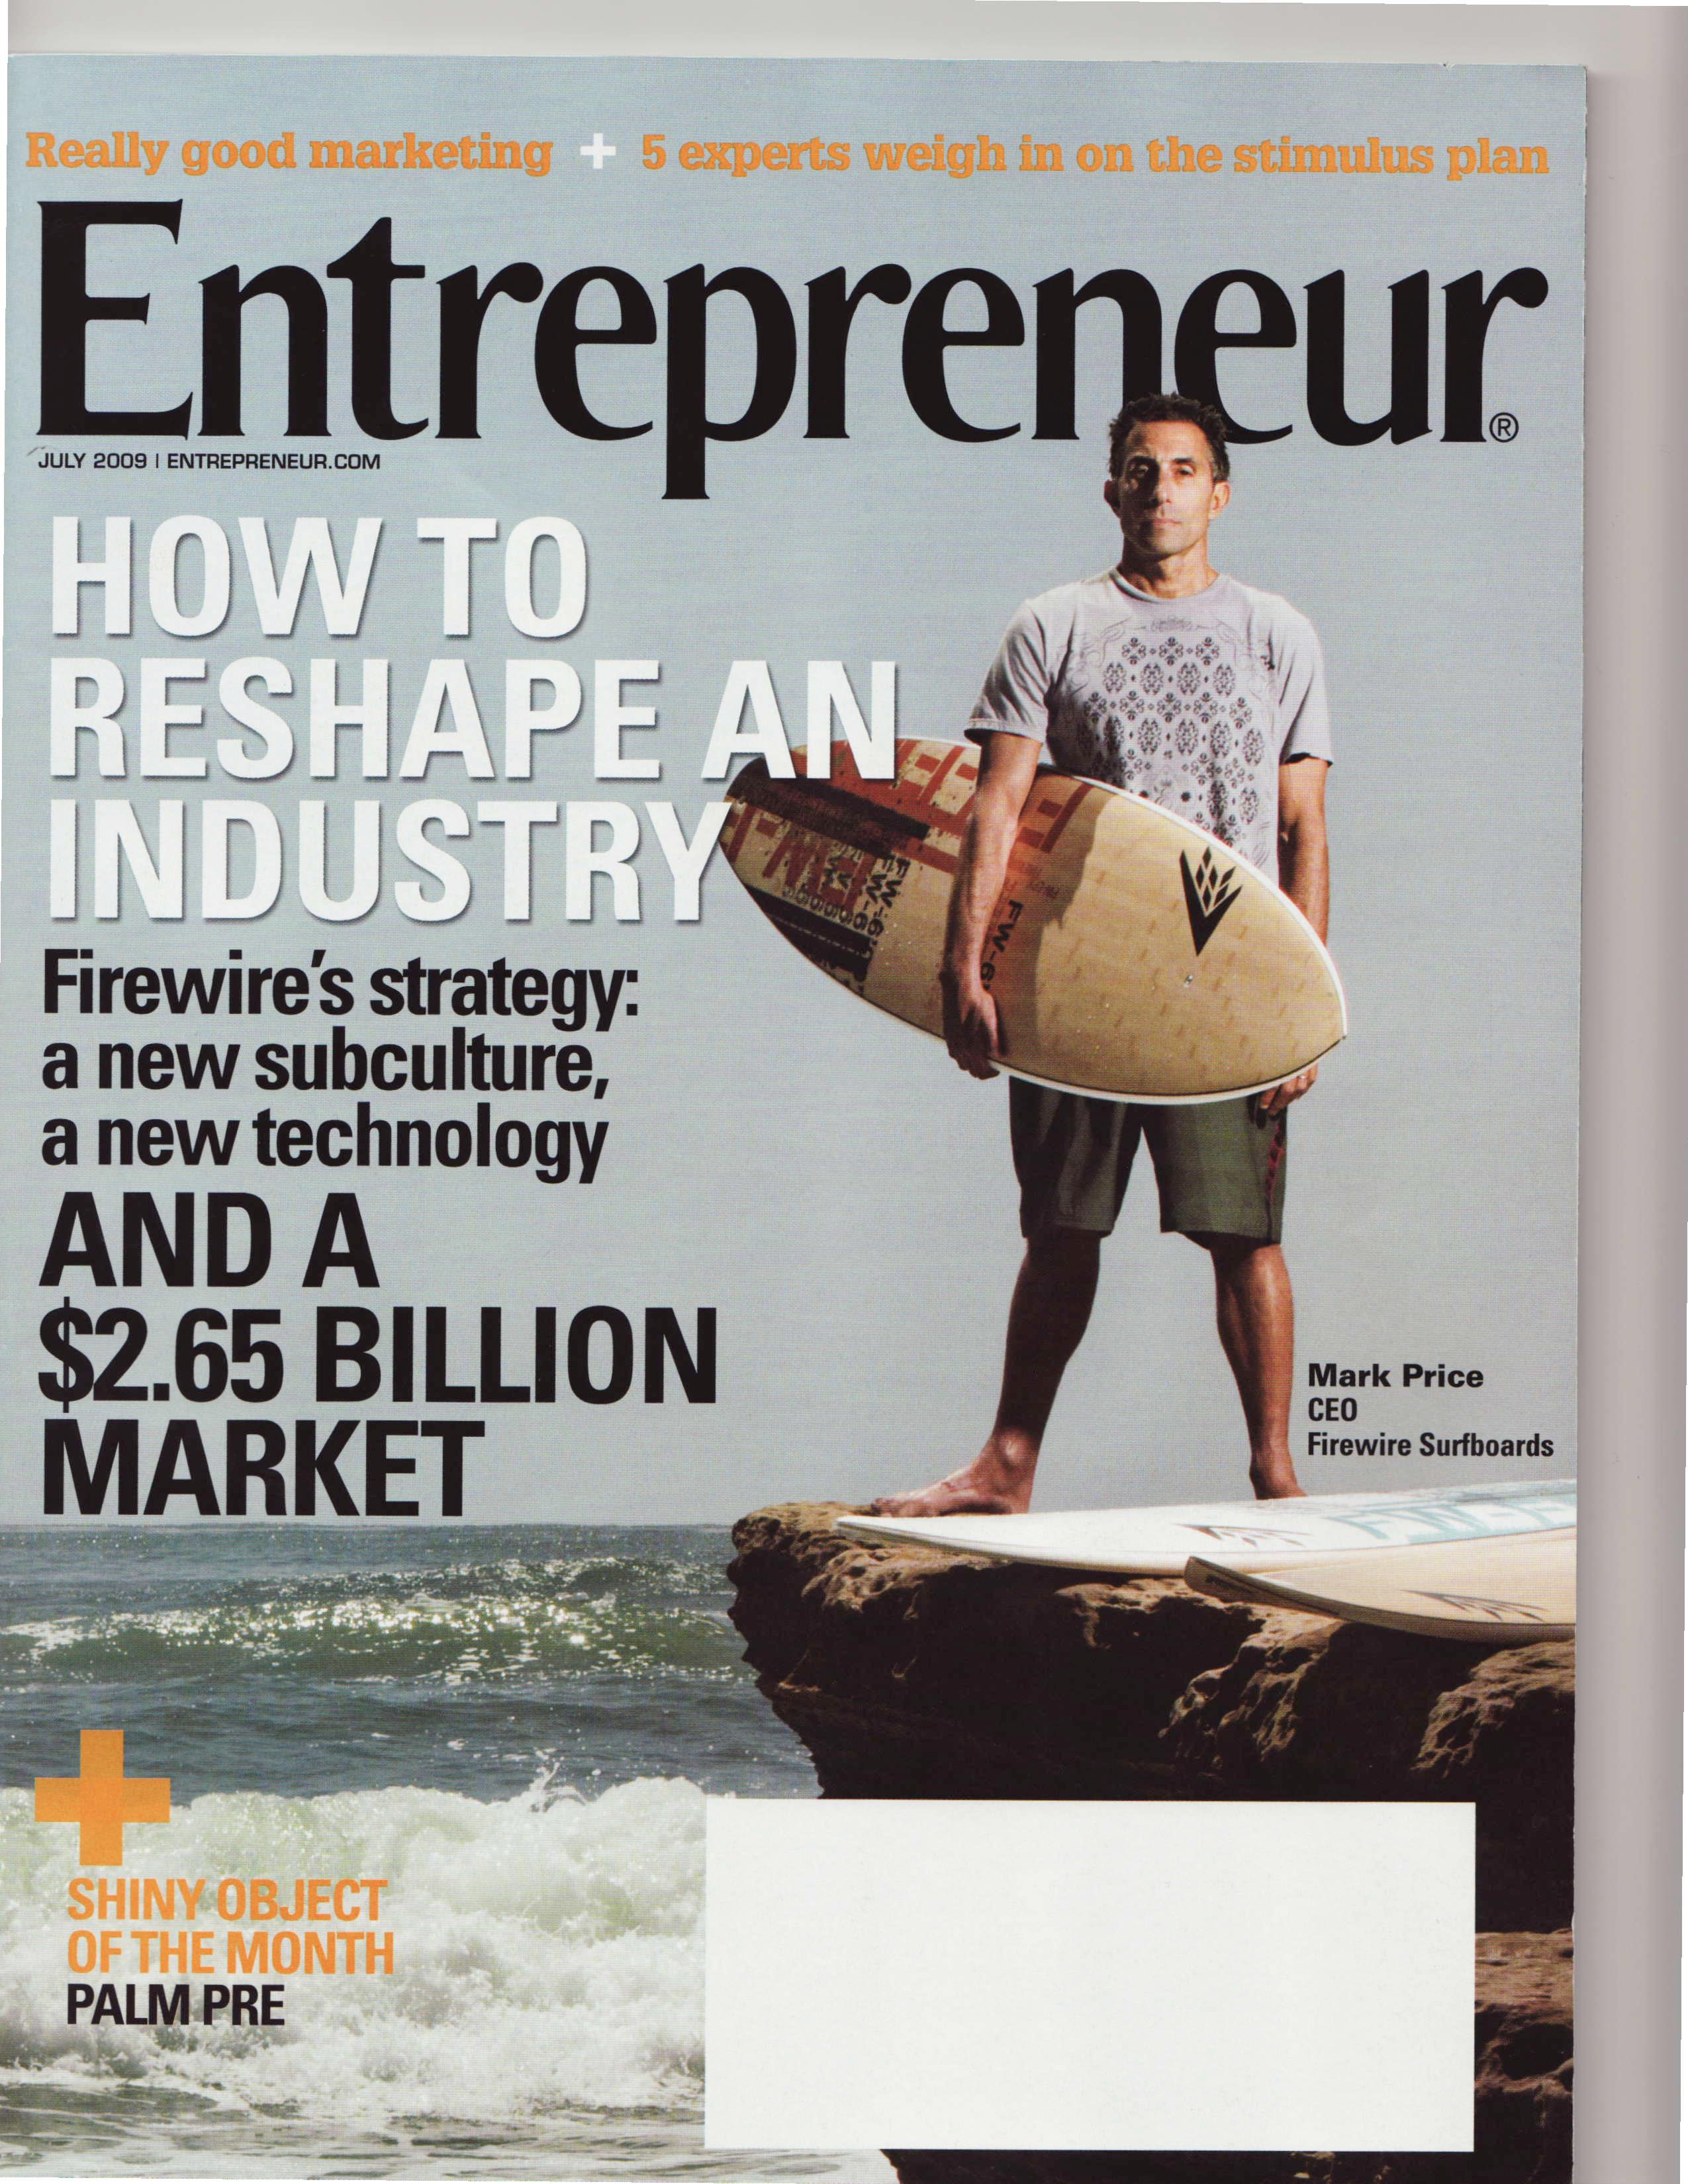 Firewire CEO On The Cover Of Entrepreneur Magazine | Adventure ...